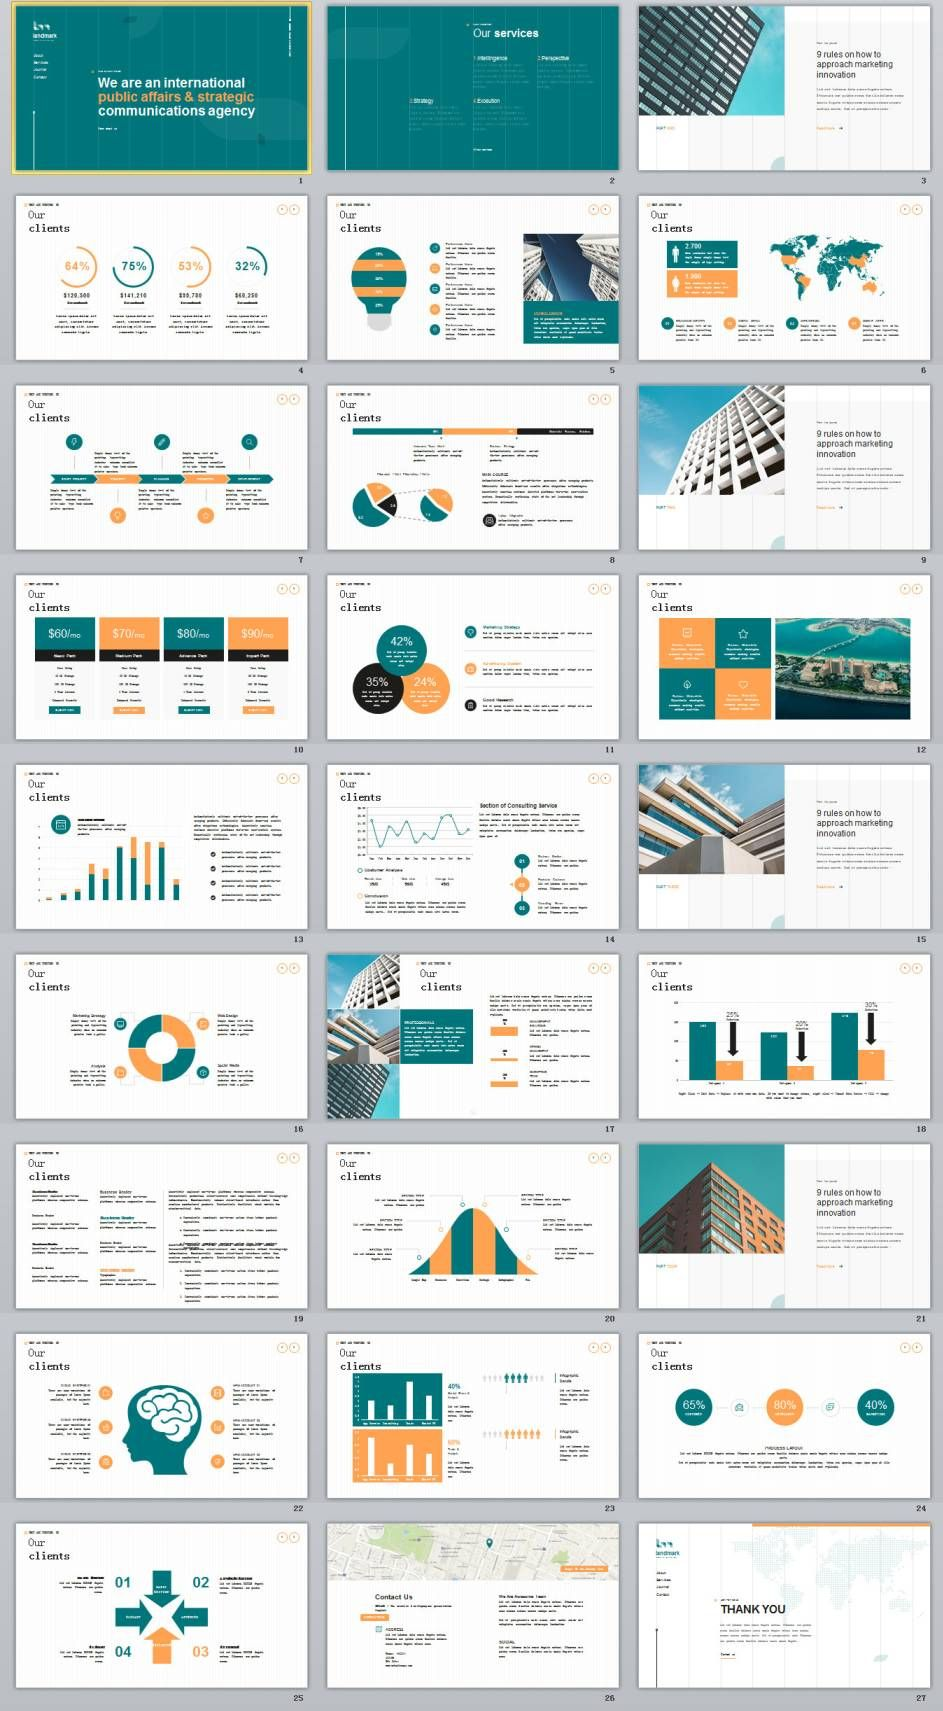 27 company cool introduction chart powerpoint template apresentao 27 company cool introduction chart powerpoint template powerpoint templates presentation animation toneelgroepblik Image collections